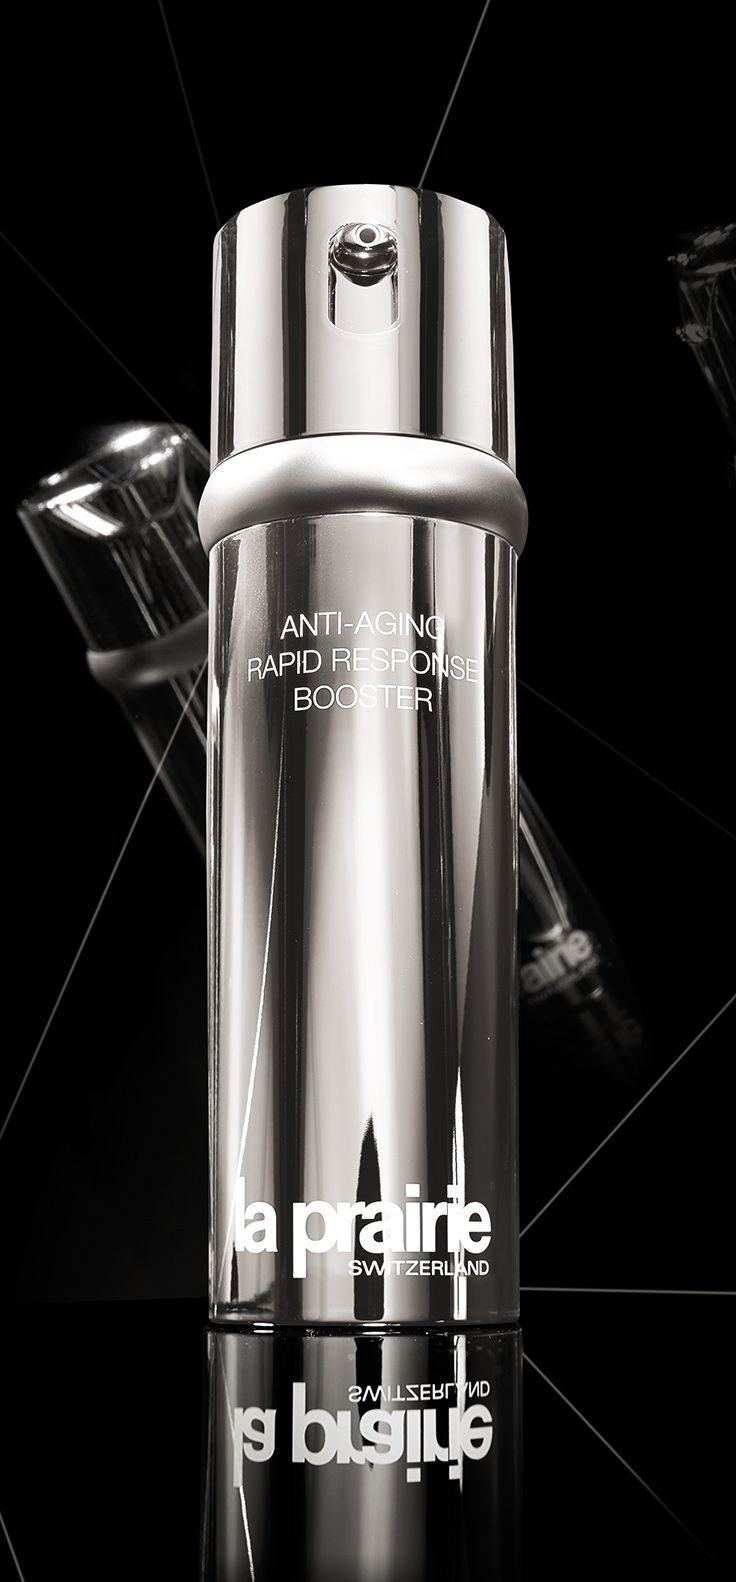 Reverse the effects of aging with La Prairie's Rapid Age-Defying booster.